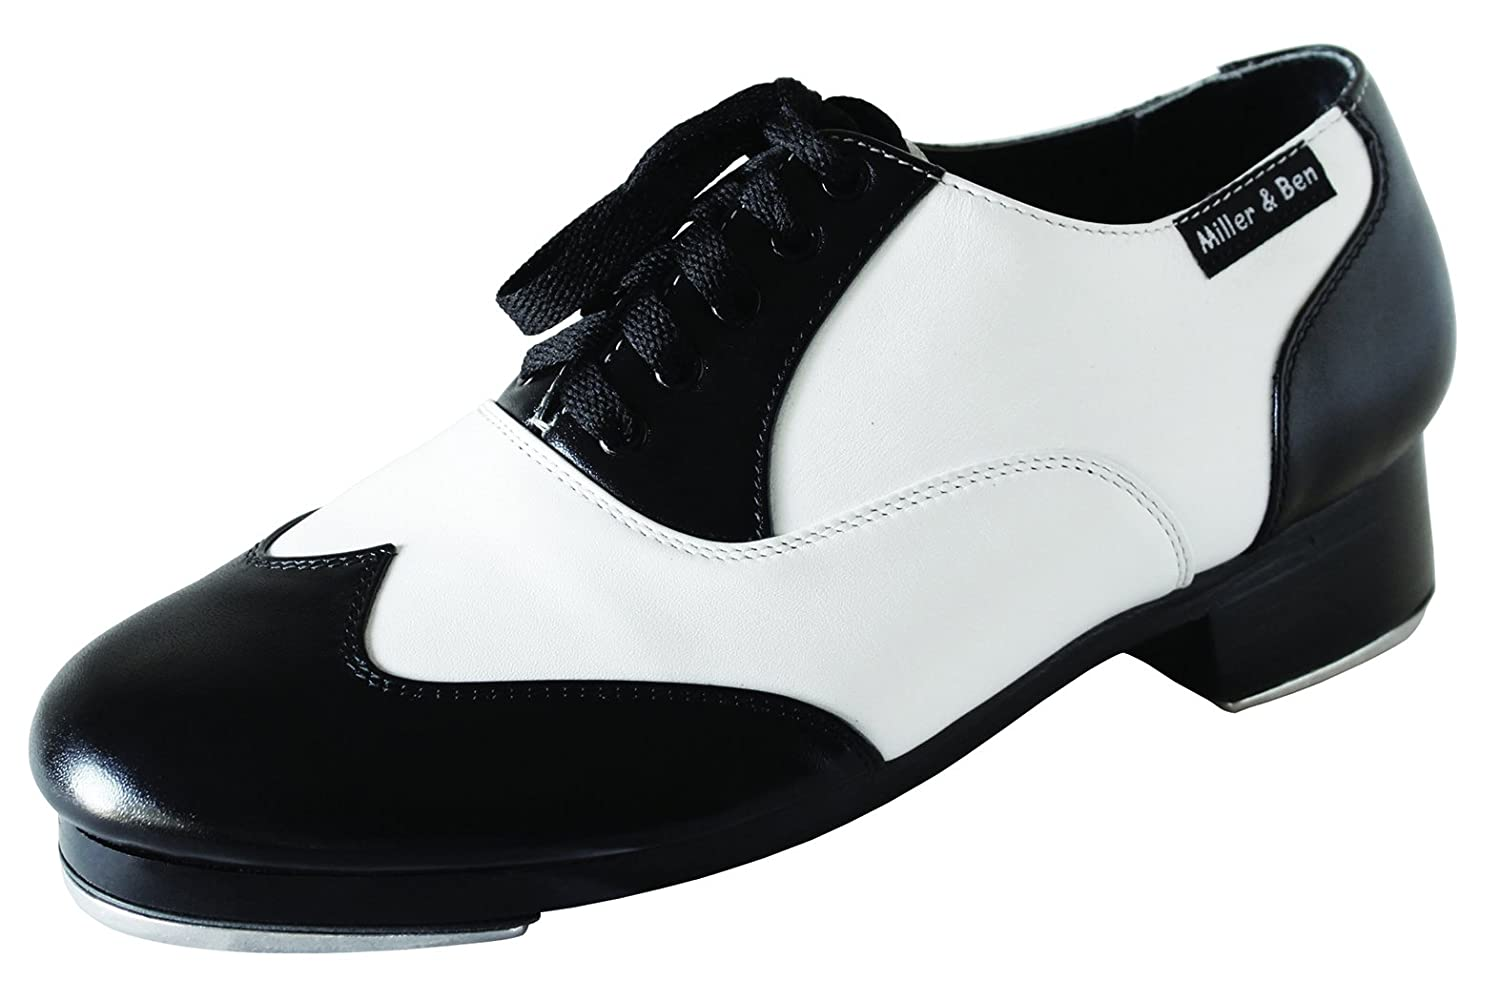 1940s Mens Shoes | Gangster, Spectator, Black and White Shoes Miller & Ben Tap Shoes Jazz-Tap Master Black & White - STANDARD SIZES $285.00 AT vintagedancer.com